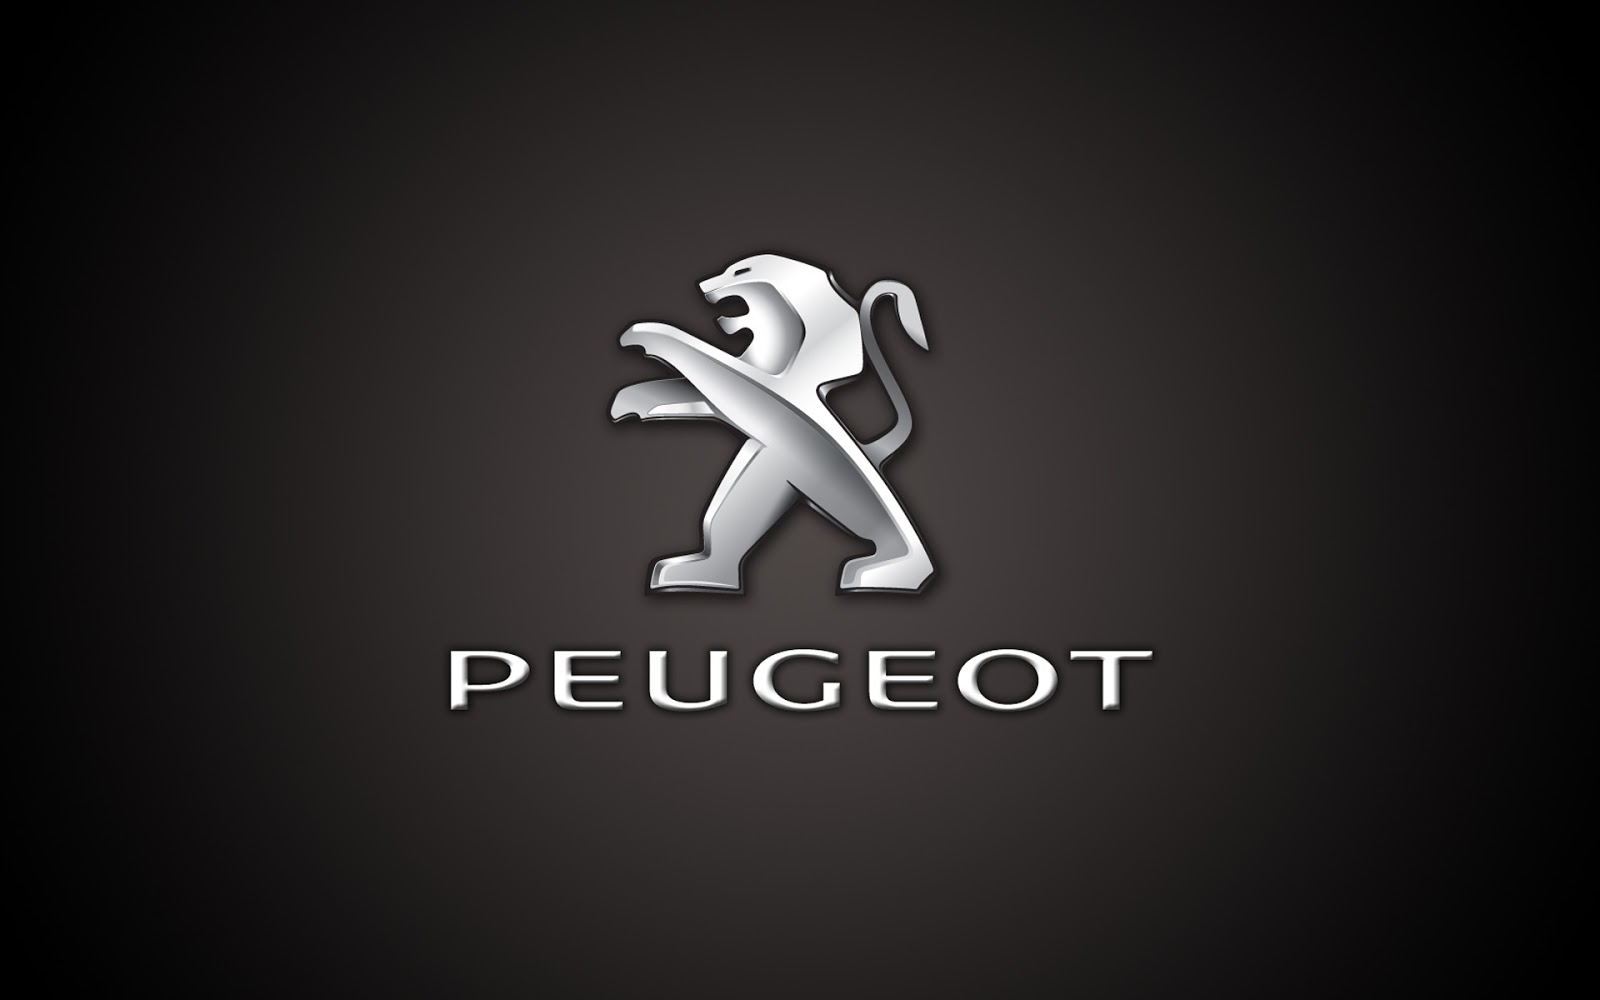 peugeot logo 2013 geneva motor show. Black Bedroom Furniture Sets. Home Design Ideas